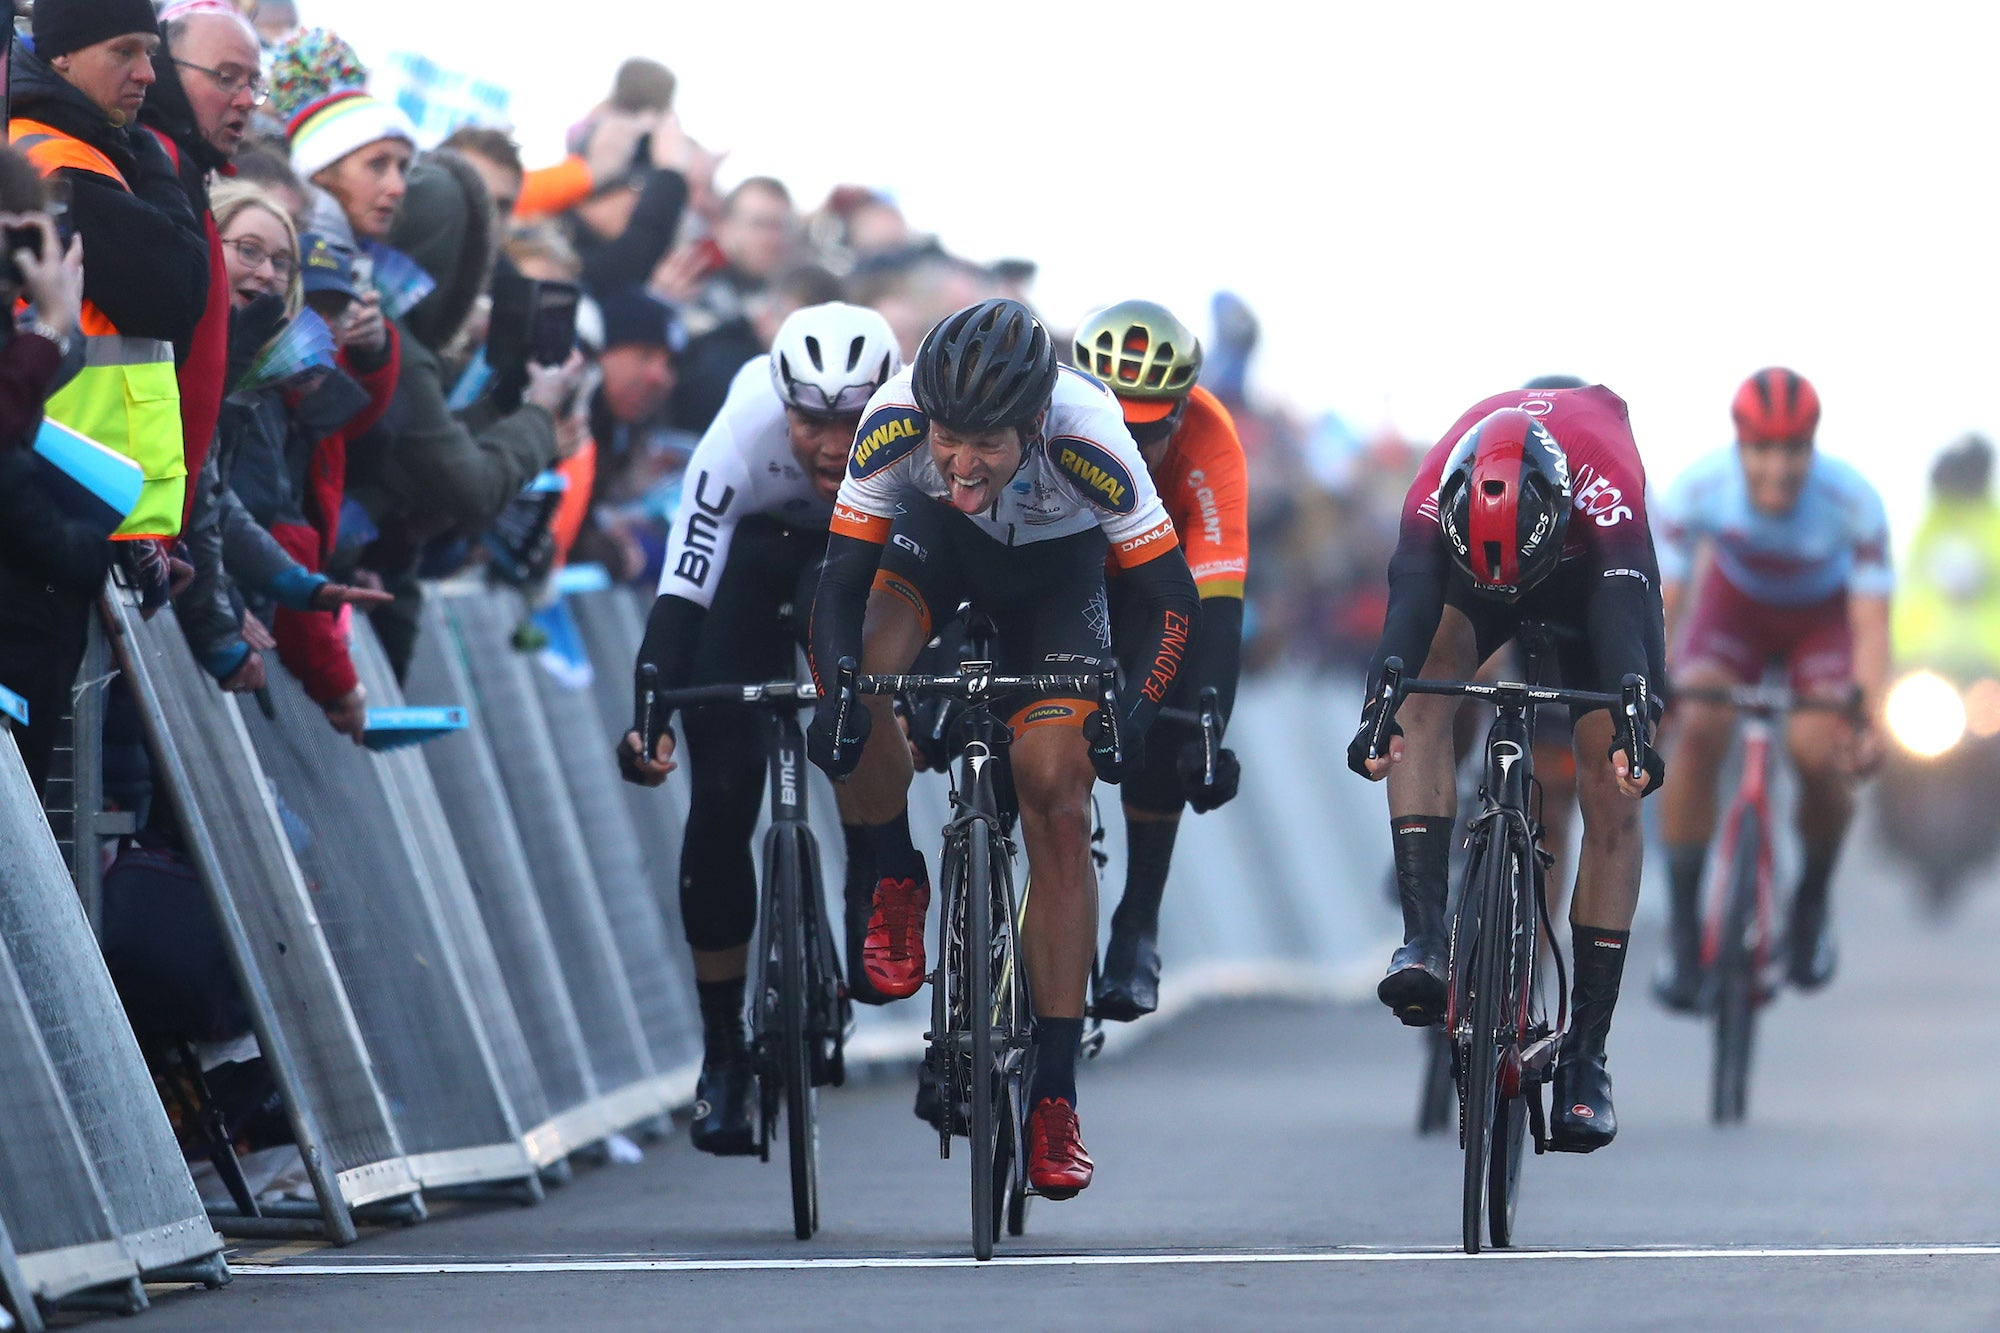 Yorkshire: Vos wraps up overall in the women's, Kamp takes sprint in the men's